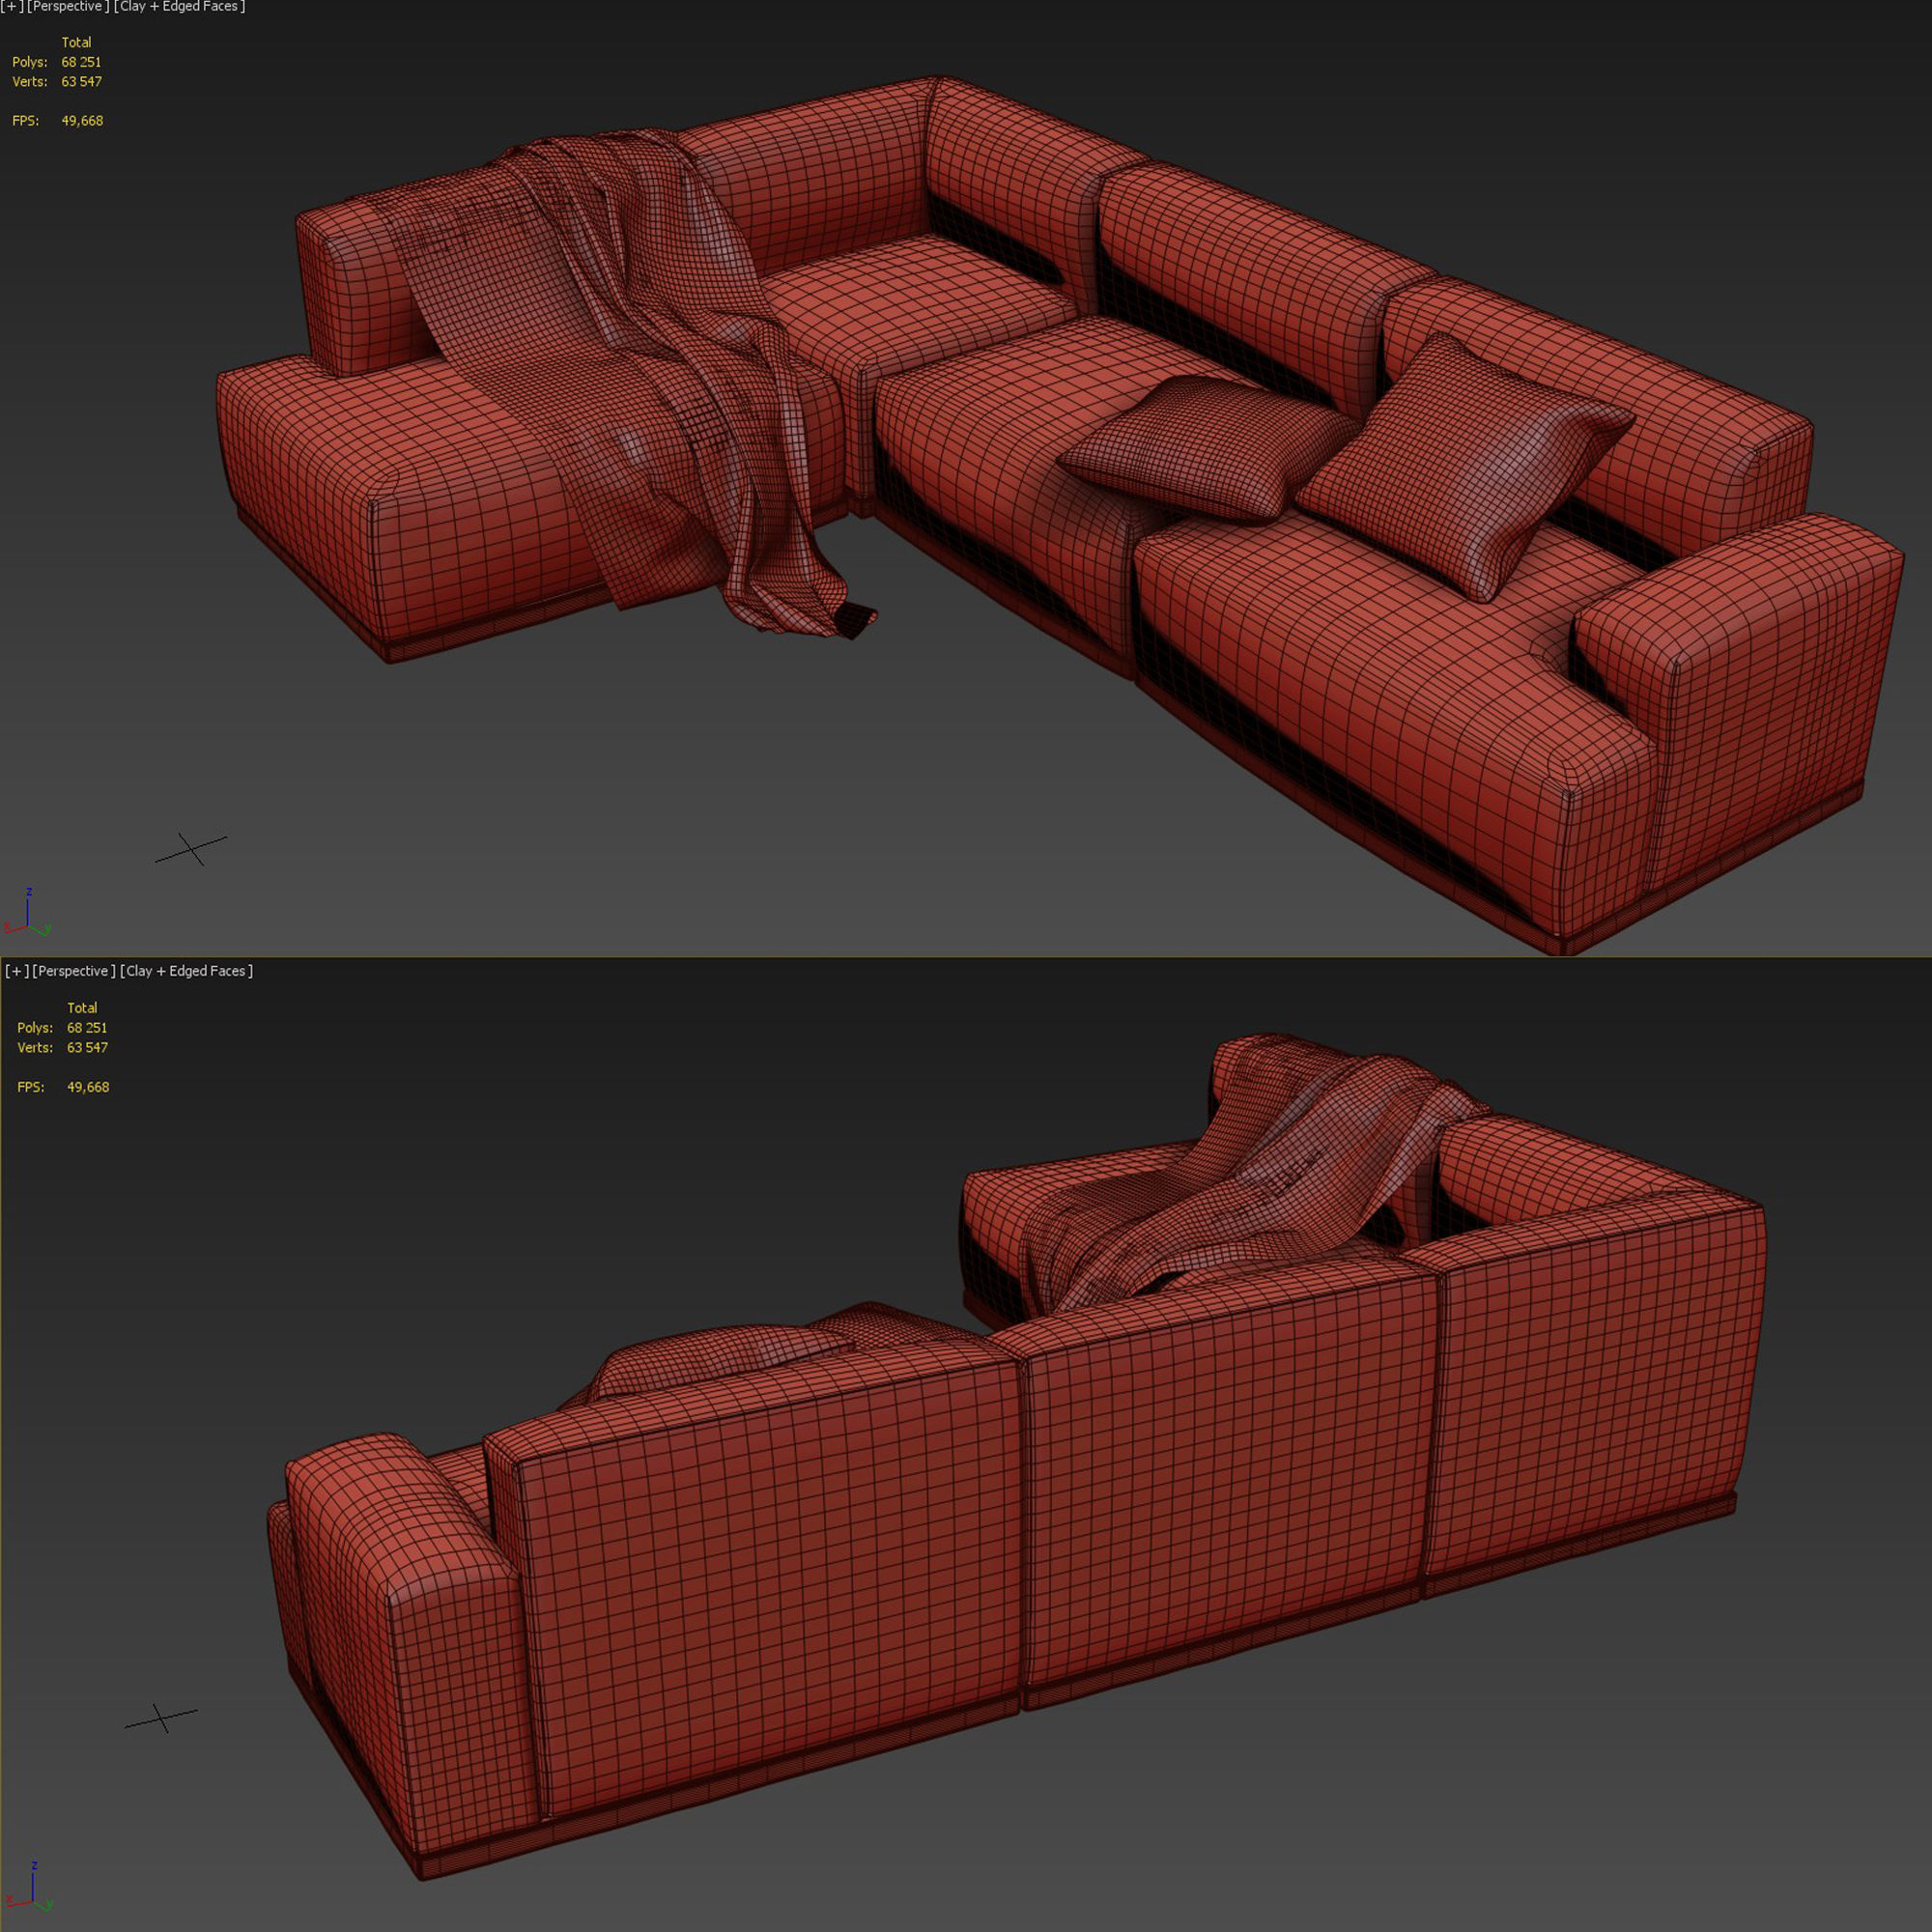 wall mount fold out sofa sleeper home 3 seater rattan effect mini corner bed accessories furniture hinges folding